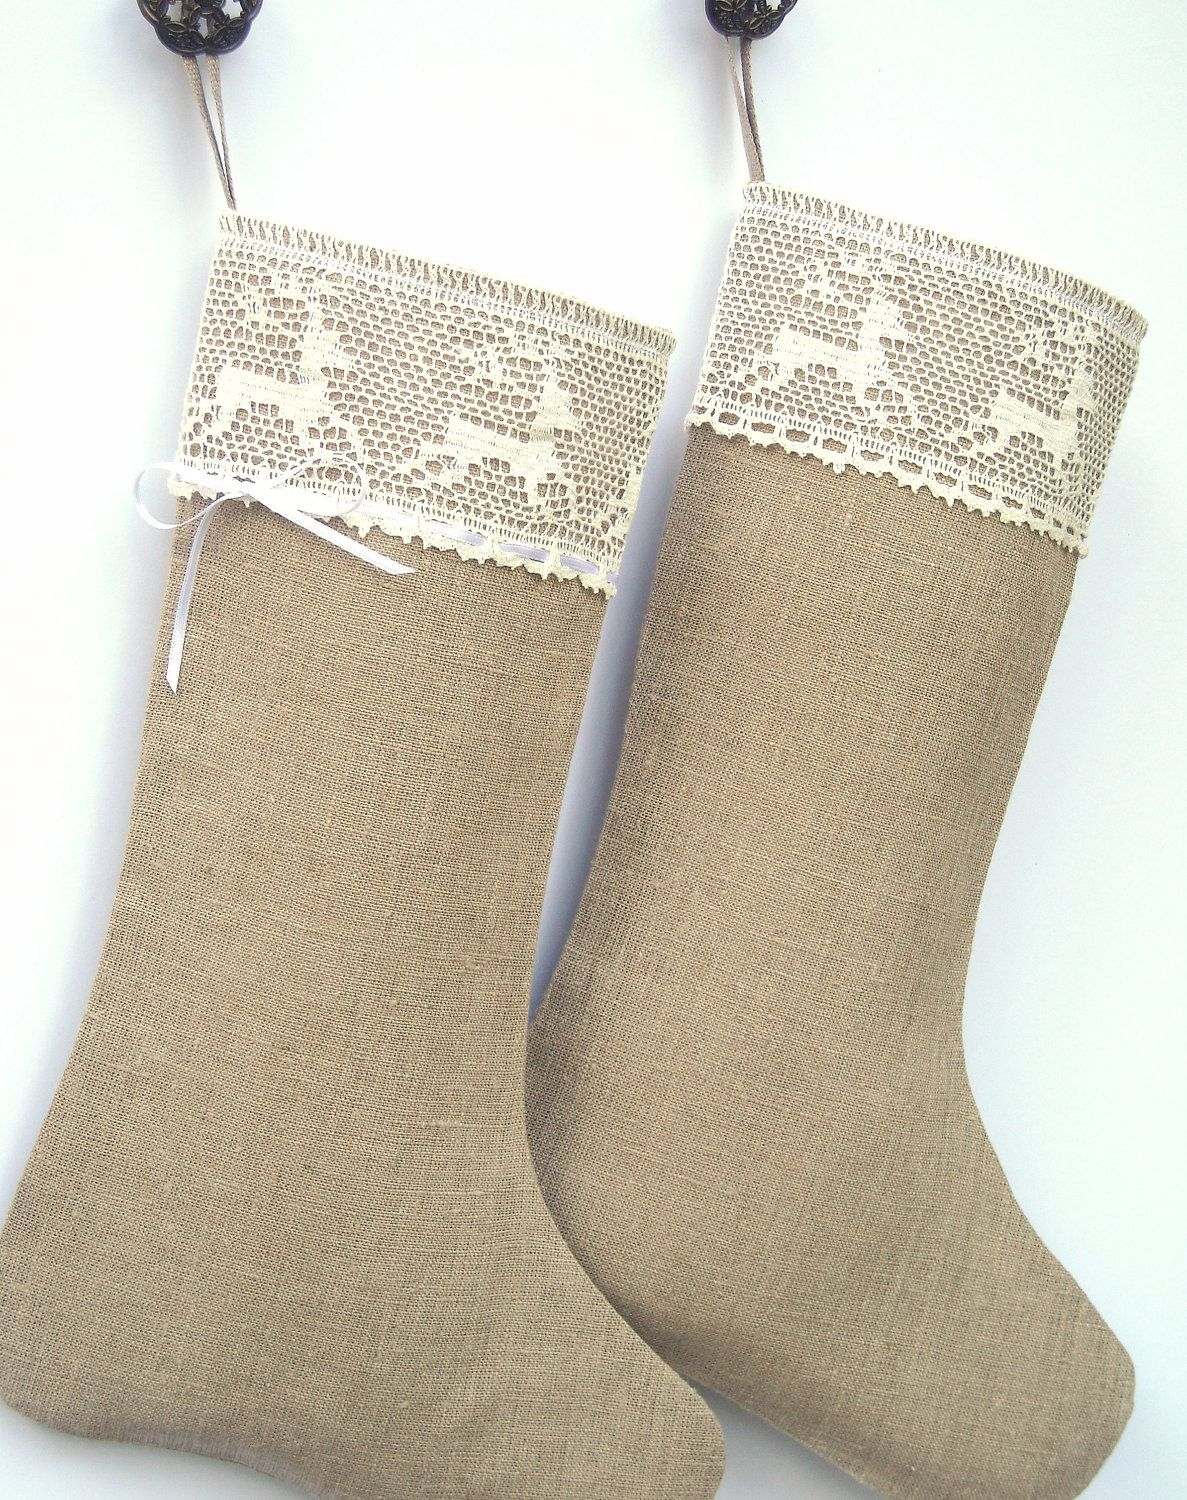 Scandinavian Christmas stocking - Linen Burlap stocking